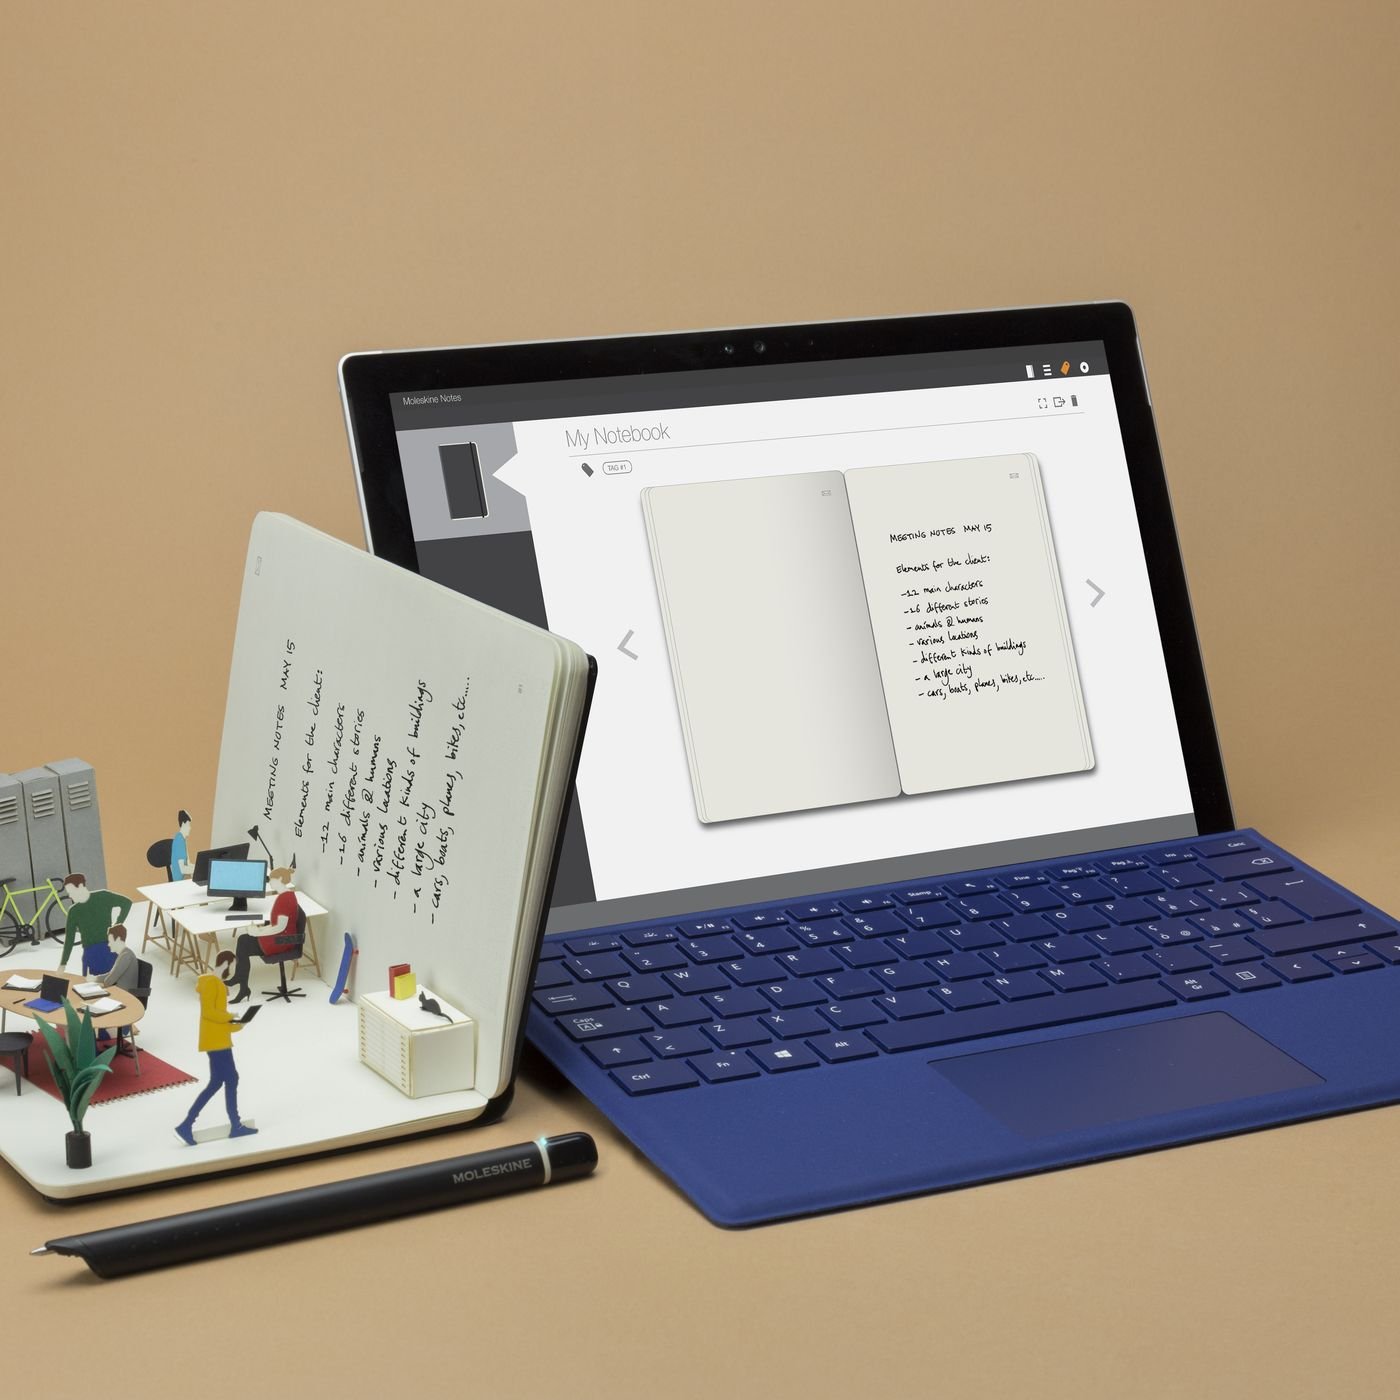 Moleskine S Smart Writing Set Digitizes Your Notes For Windows 10 The Verge